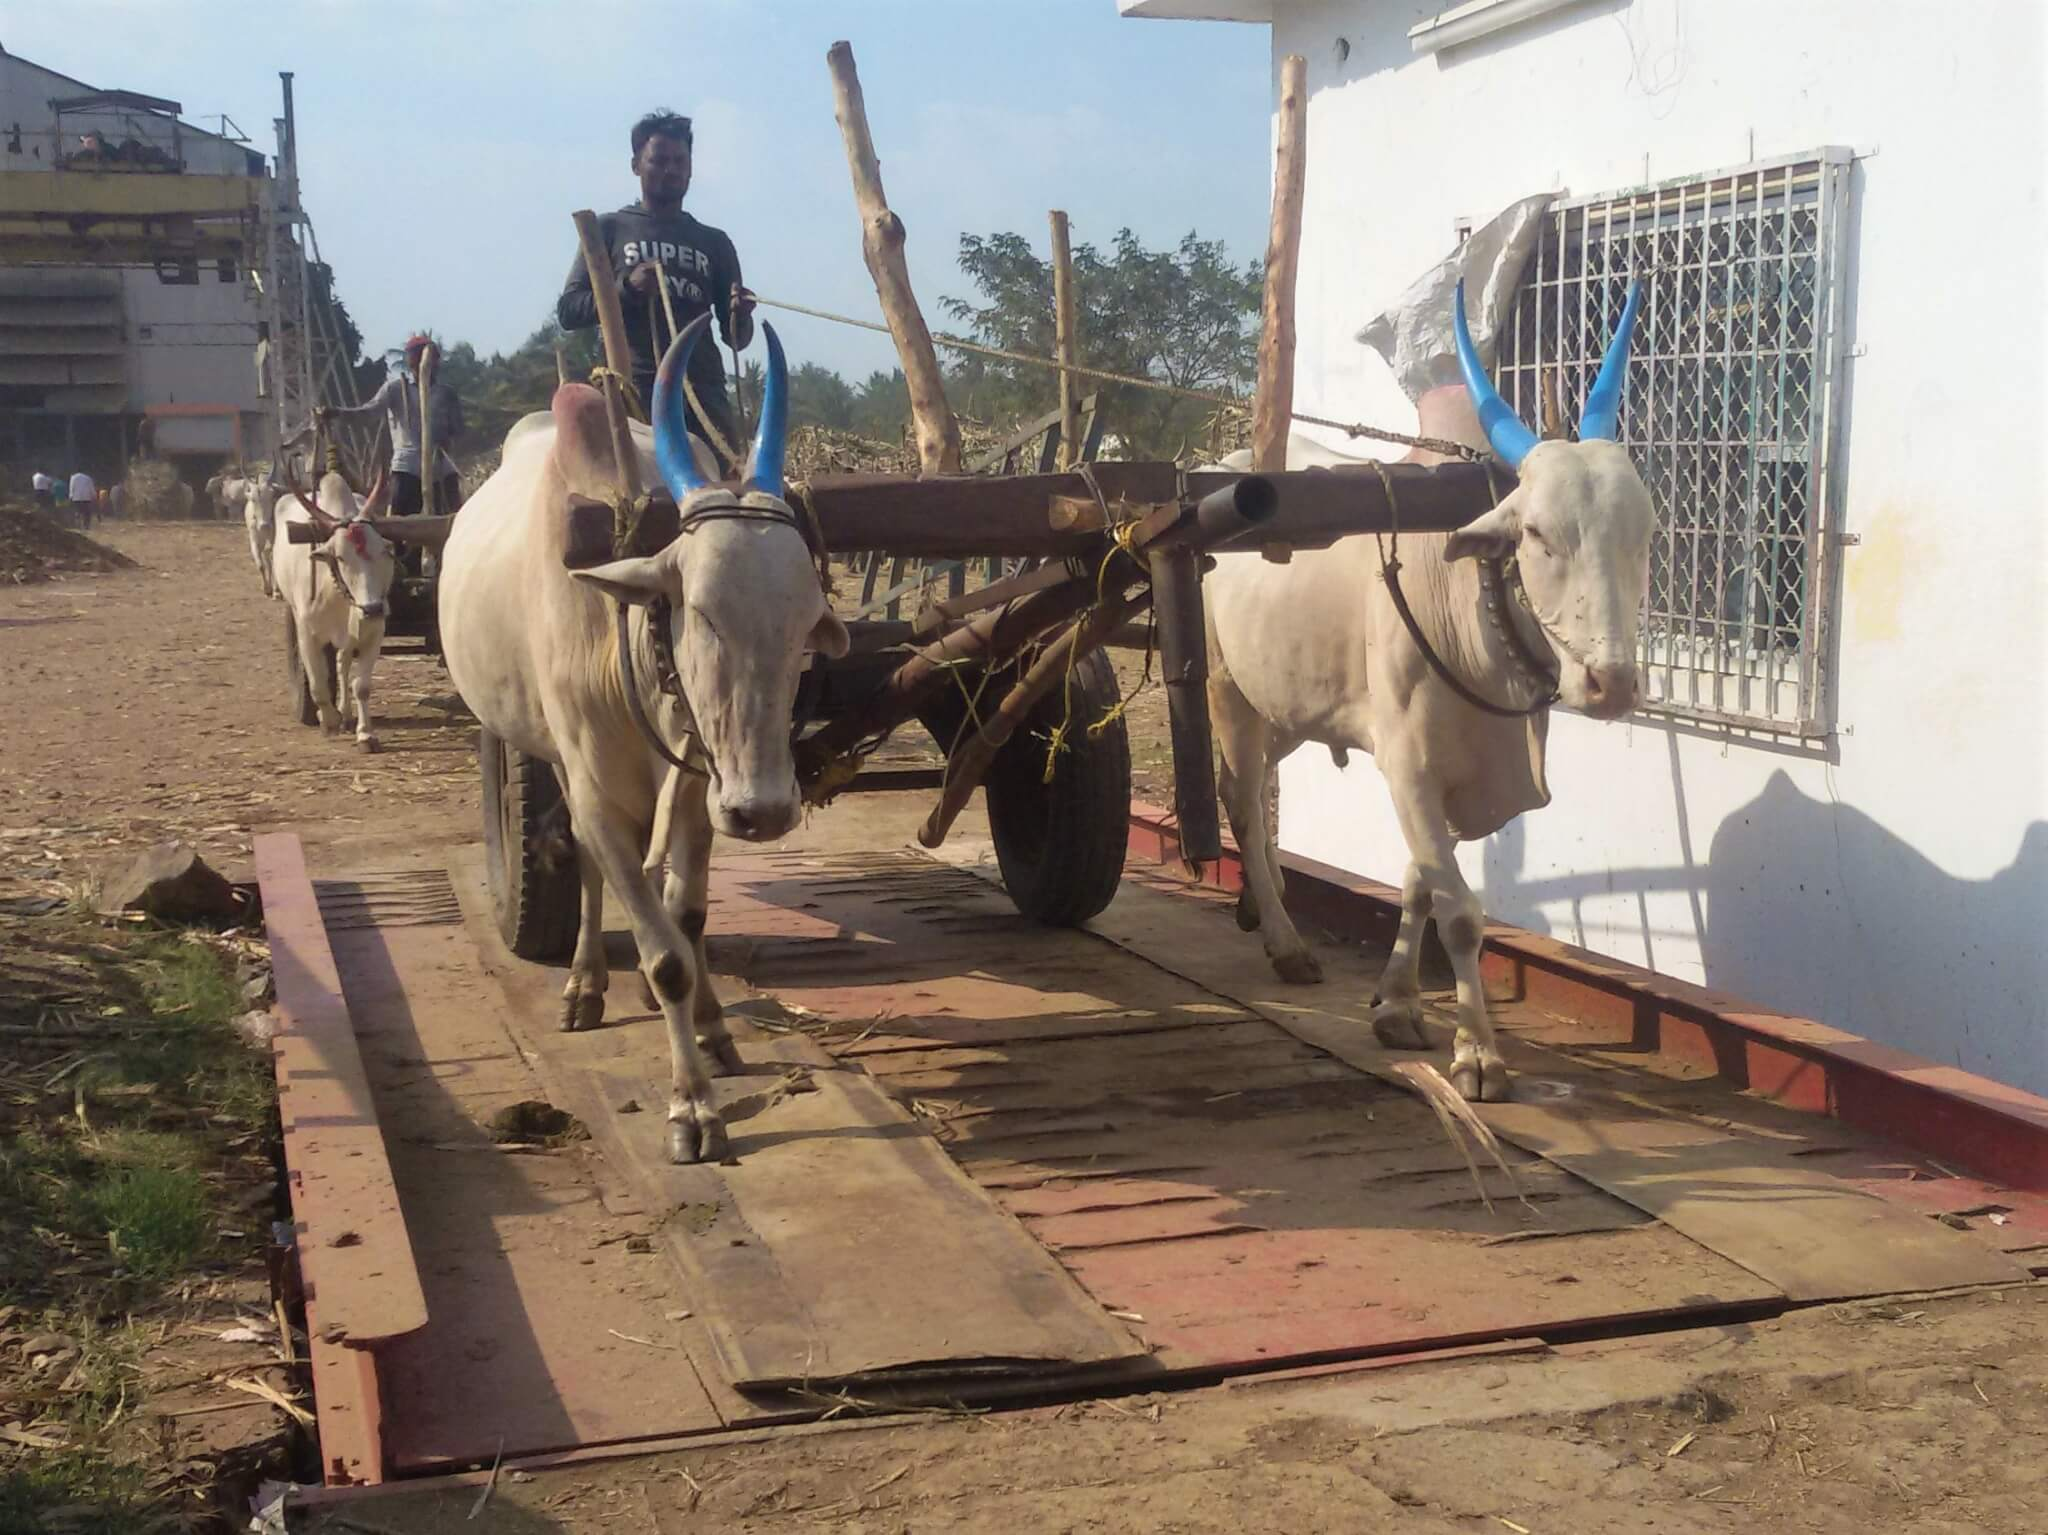 Animal Rahat covered this metal weighing platform with rubber mats to prevent slips and injuries.